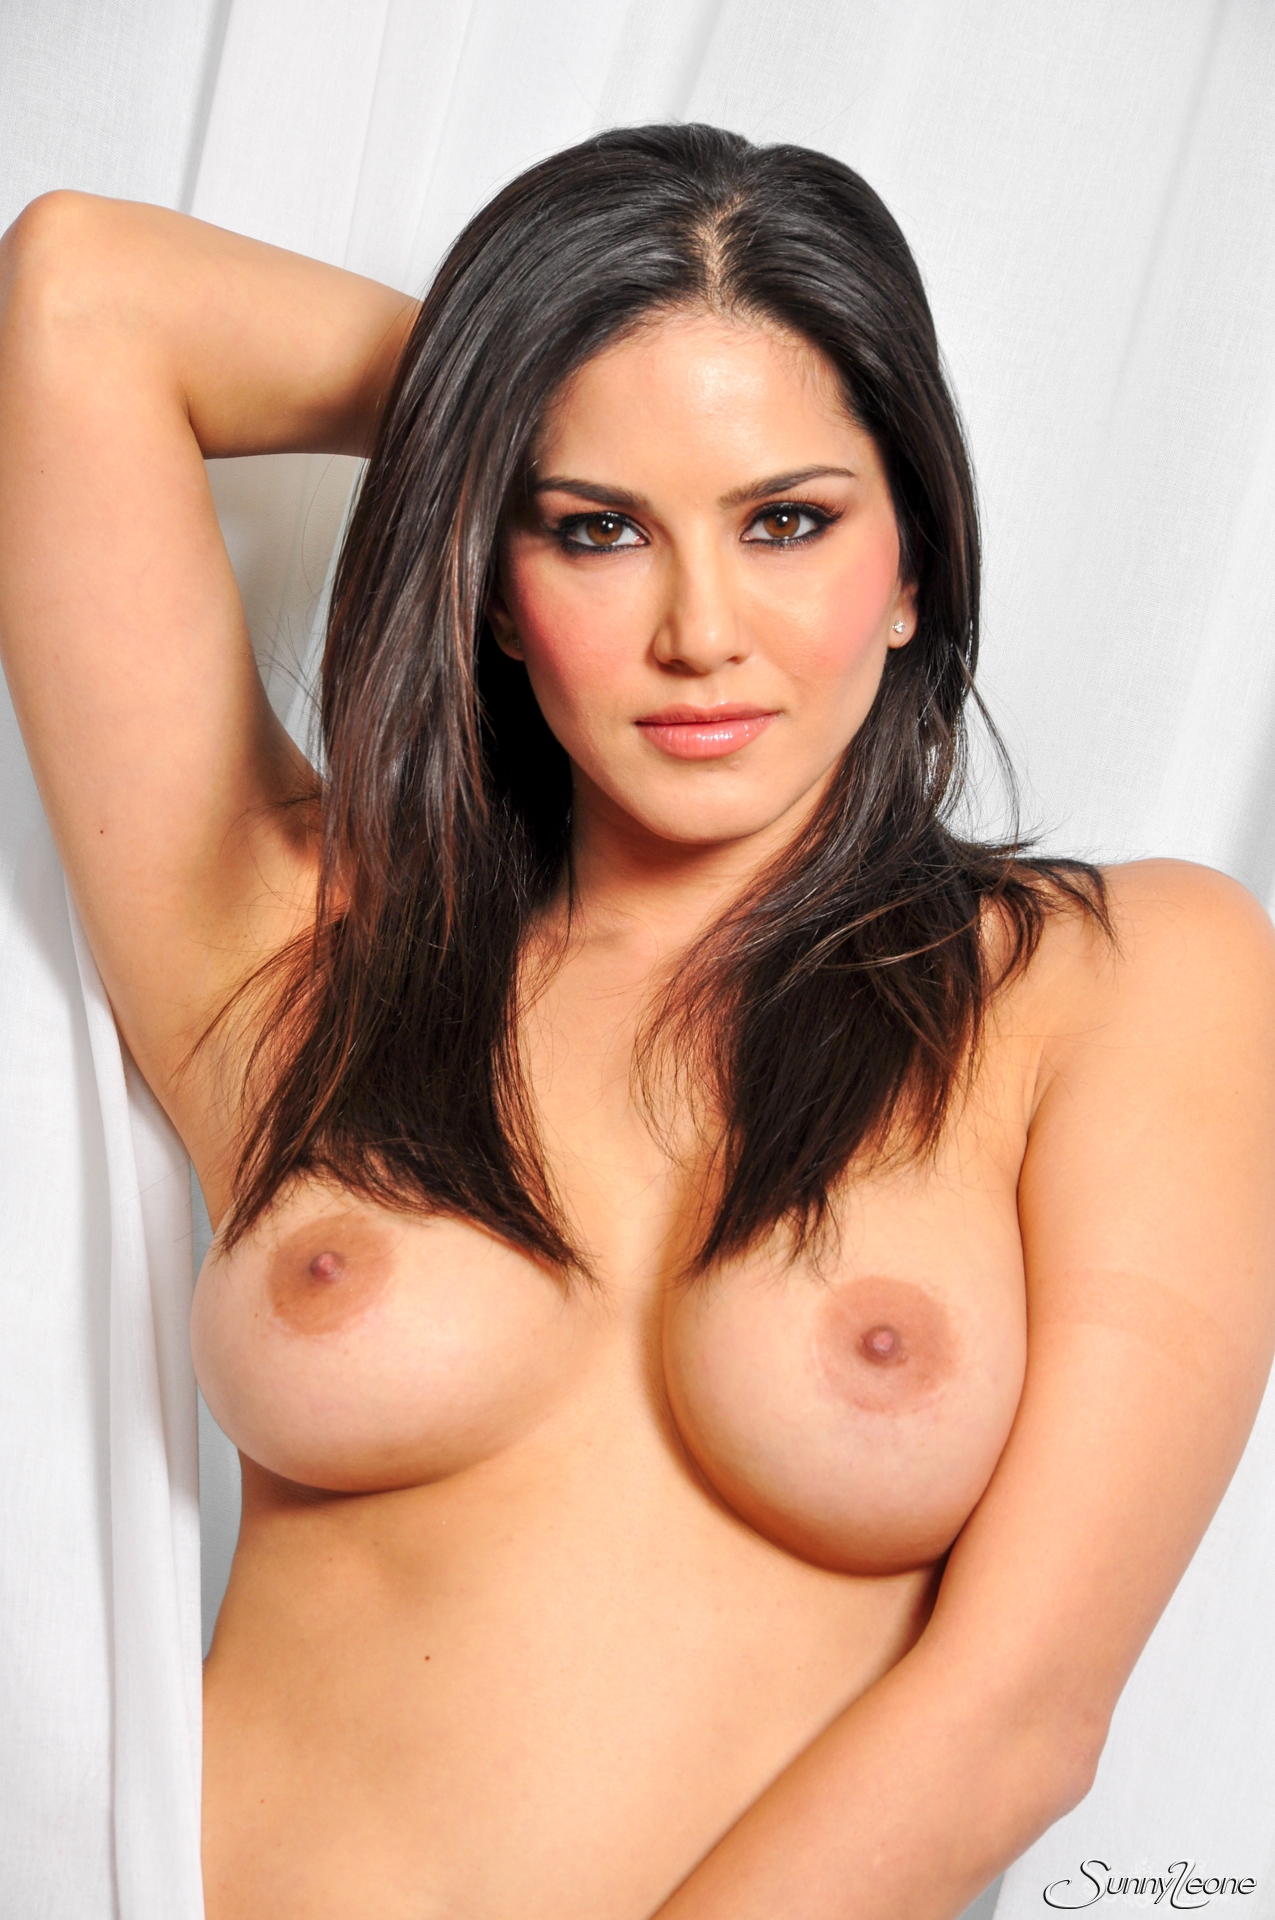 Nude Sunny Leone Poses With Curtains - Sexy Gallery Full -9289